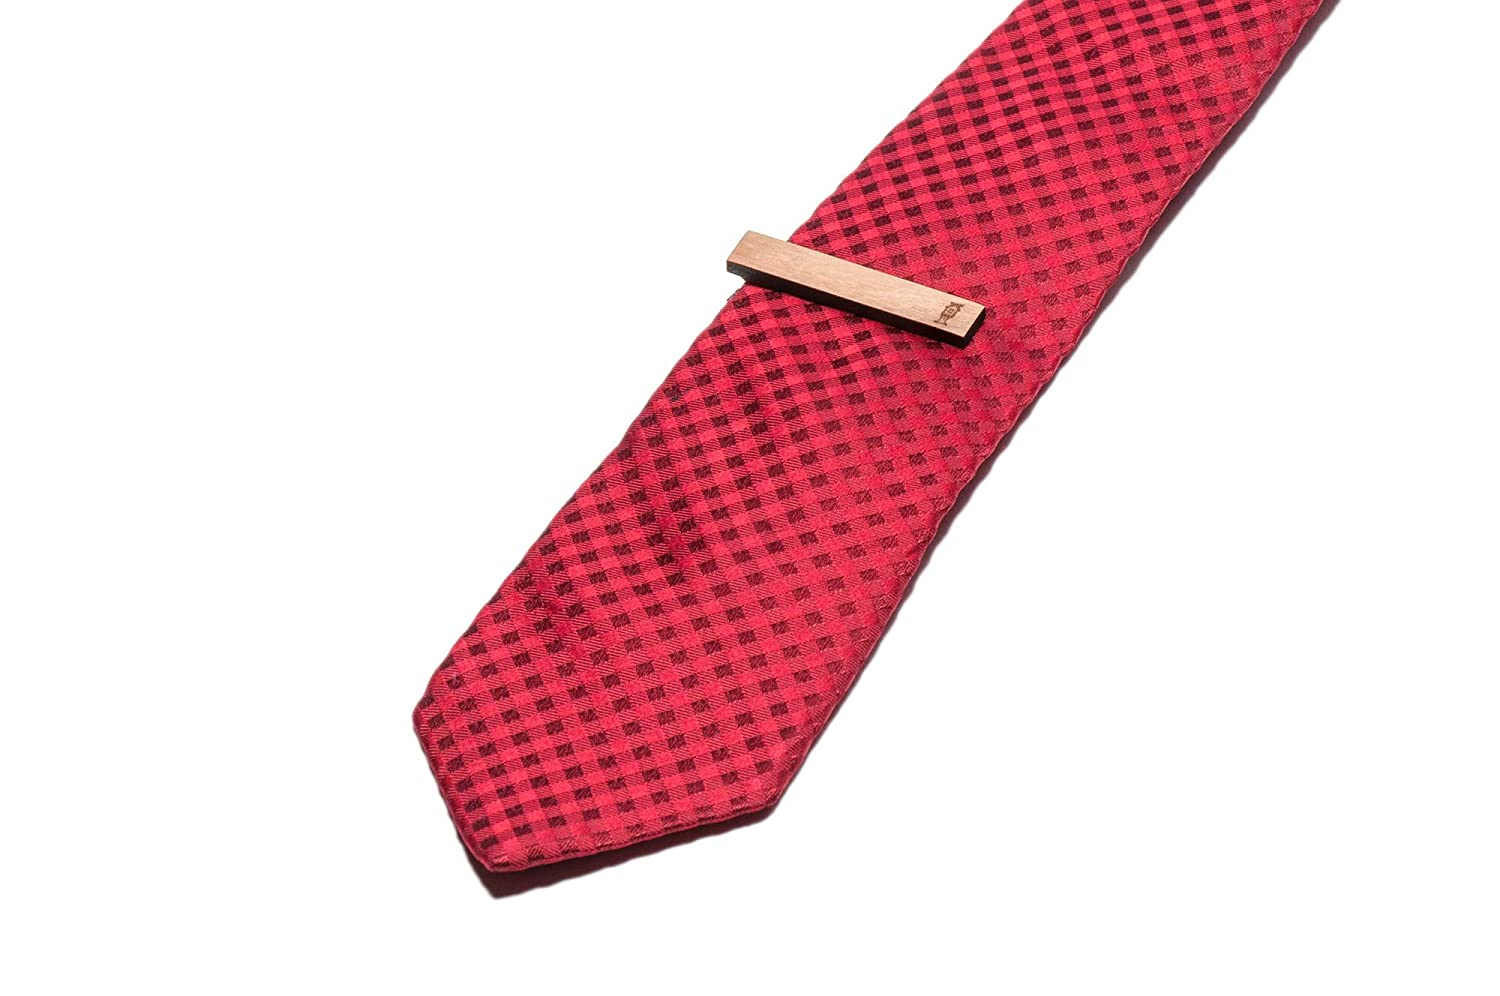 Wooden Accessories Company Wooden Tie Clips with Laser Engraved Treehouse Design Cherry Wood Tie Bar Engraved in The USA